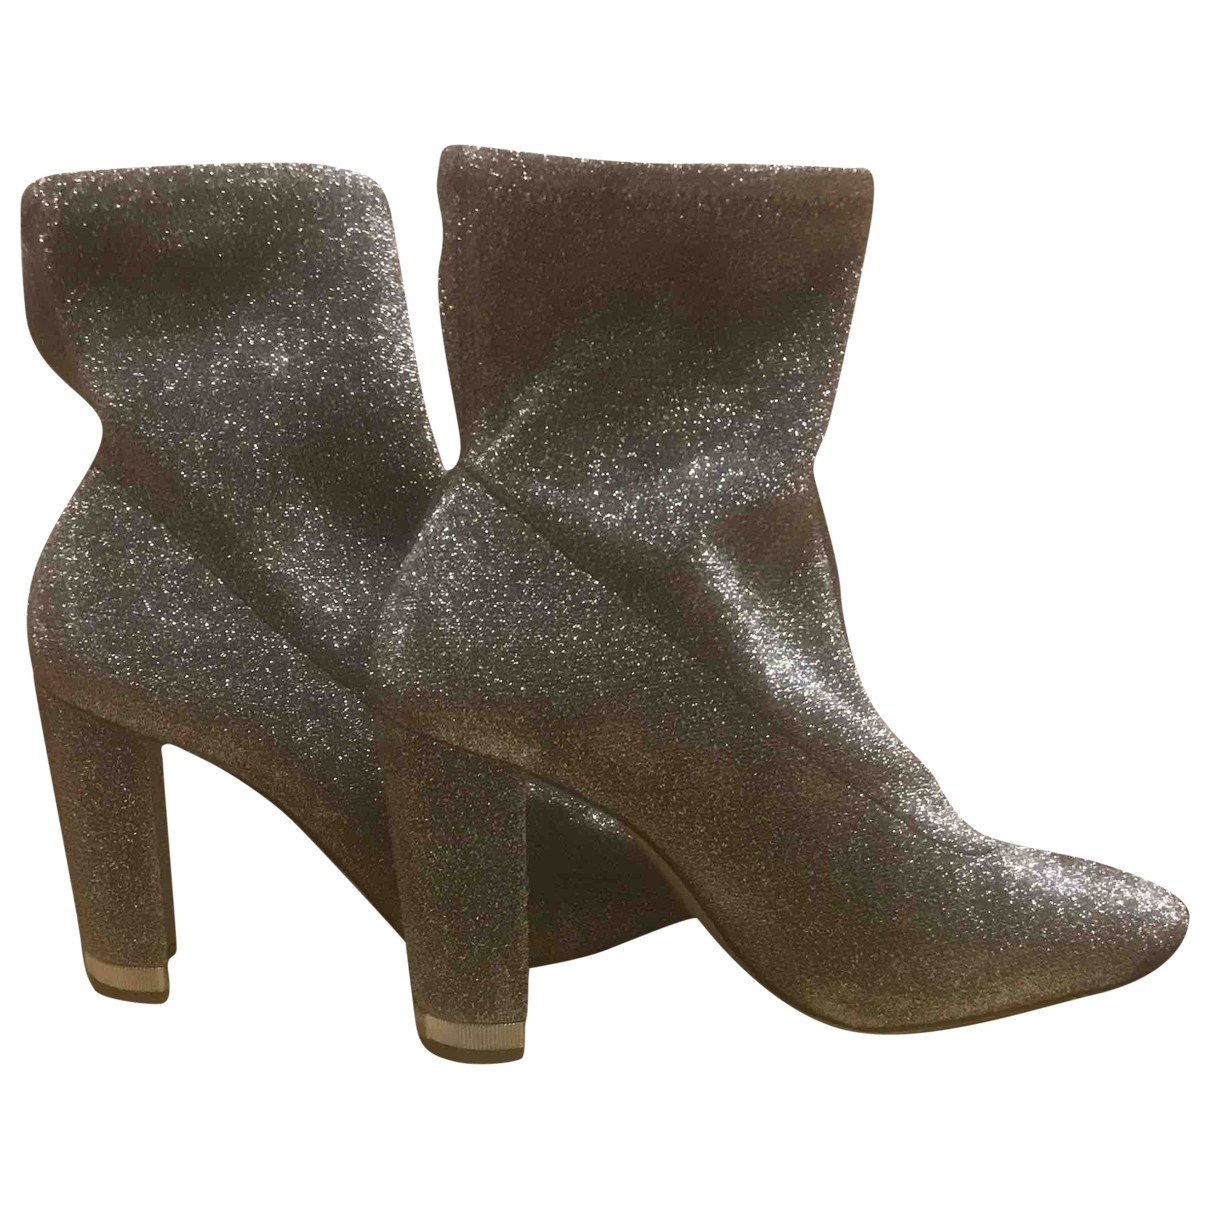 Michael Kors \N Grey Cloth Ankle boots for Women 37 EU